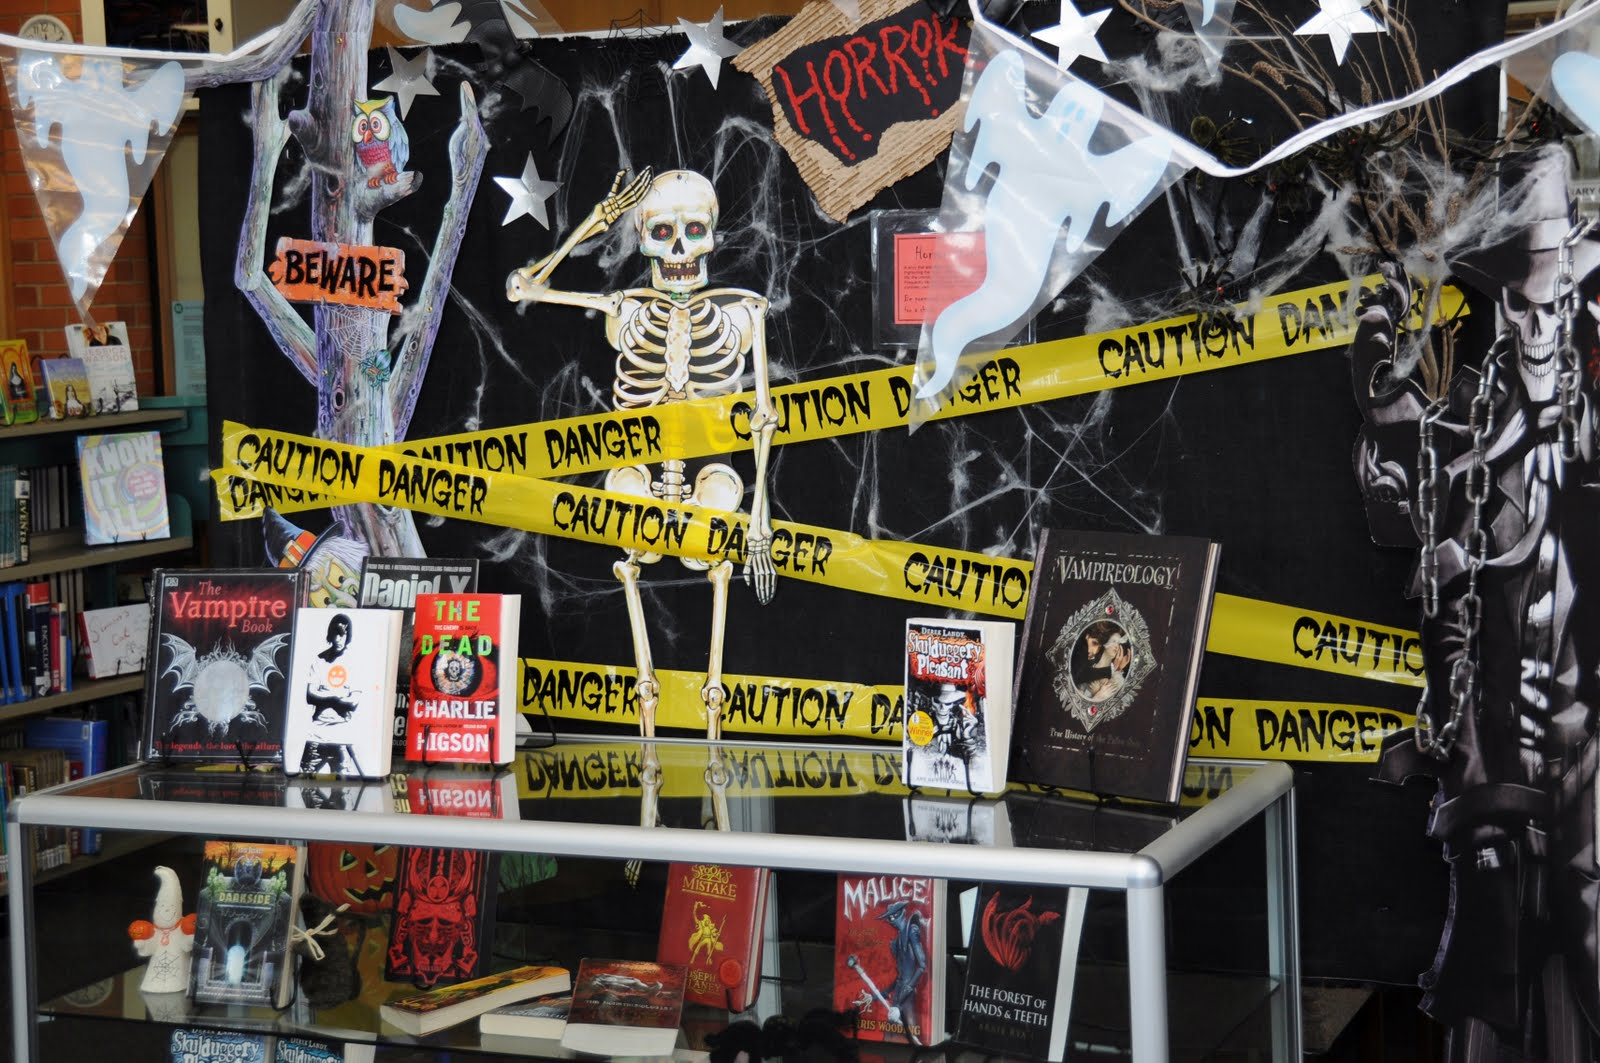 Another decoration for Halloween, but inside the store, with a black and yellow caution band and a scary skeleton. I bet the window display it's looking awesome too.